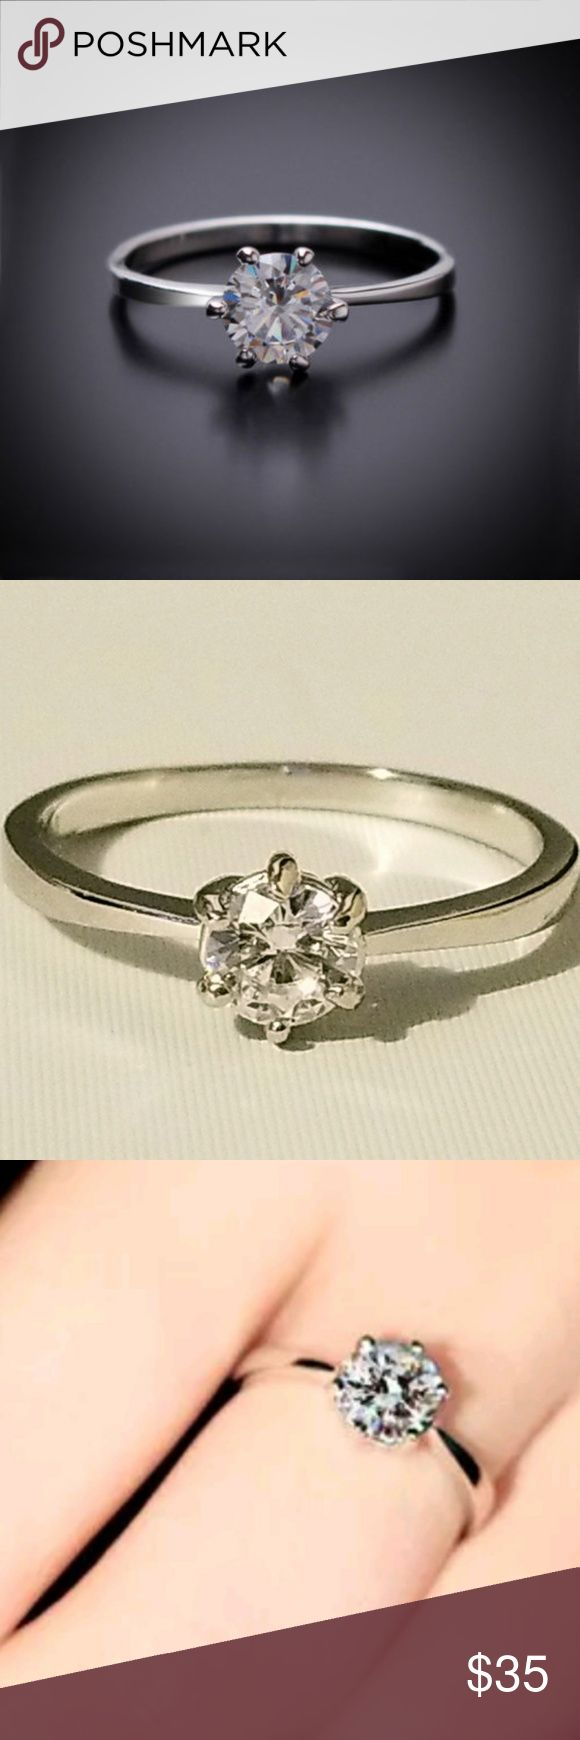 Solitaire Wedding Engagement Ring 8 Solitaire Wedding Engagement Ring 8 Aprilsplace Jewelry Rings #jewelryrings